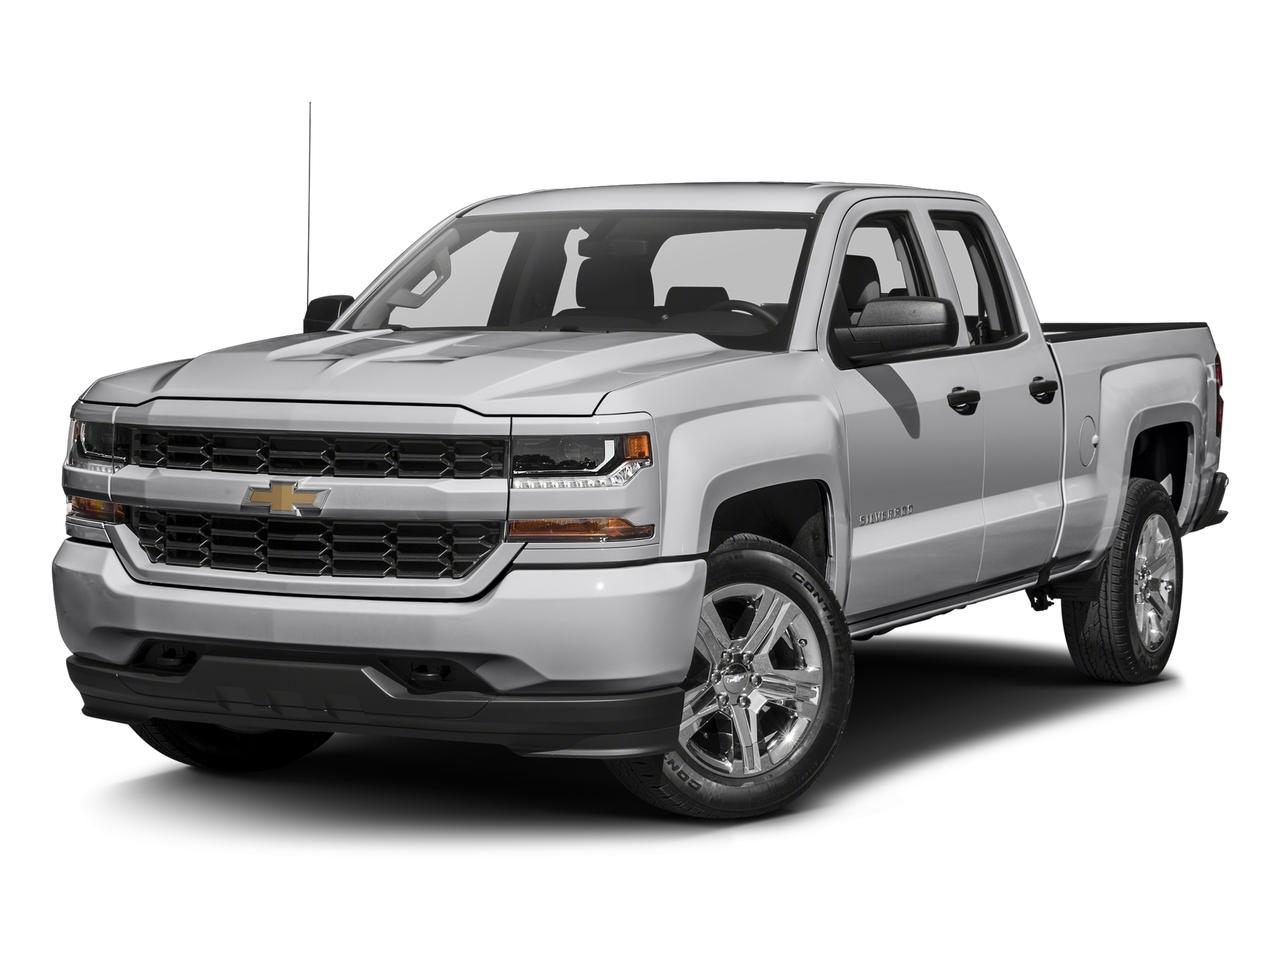 2017 Chevrolet Silverado 1500 Vehicle Photo in Joliet, IL 60586